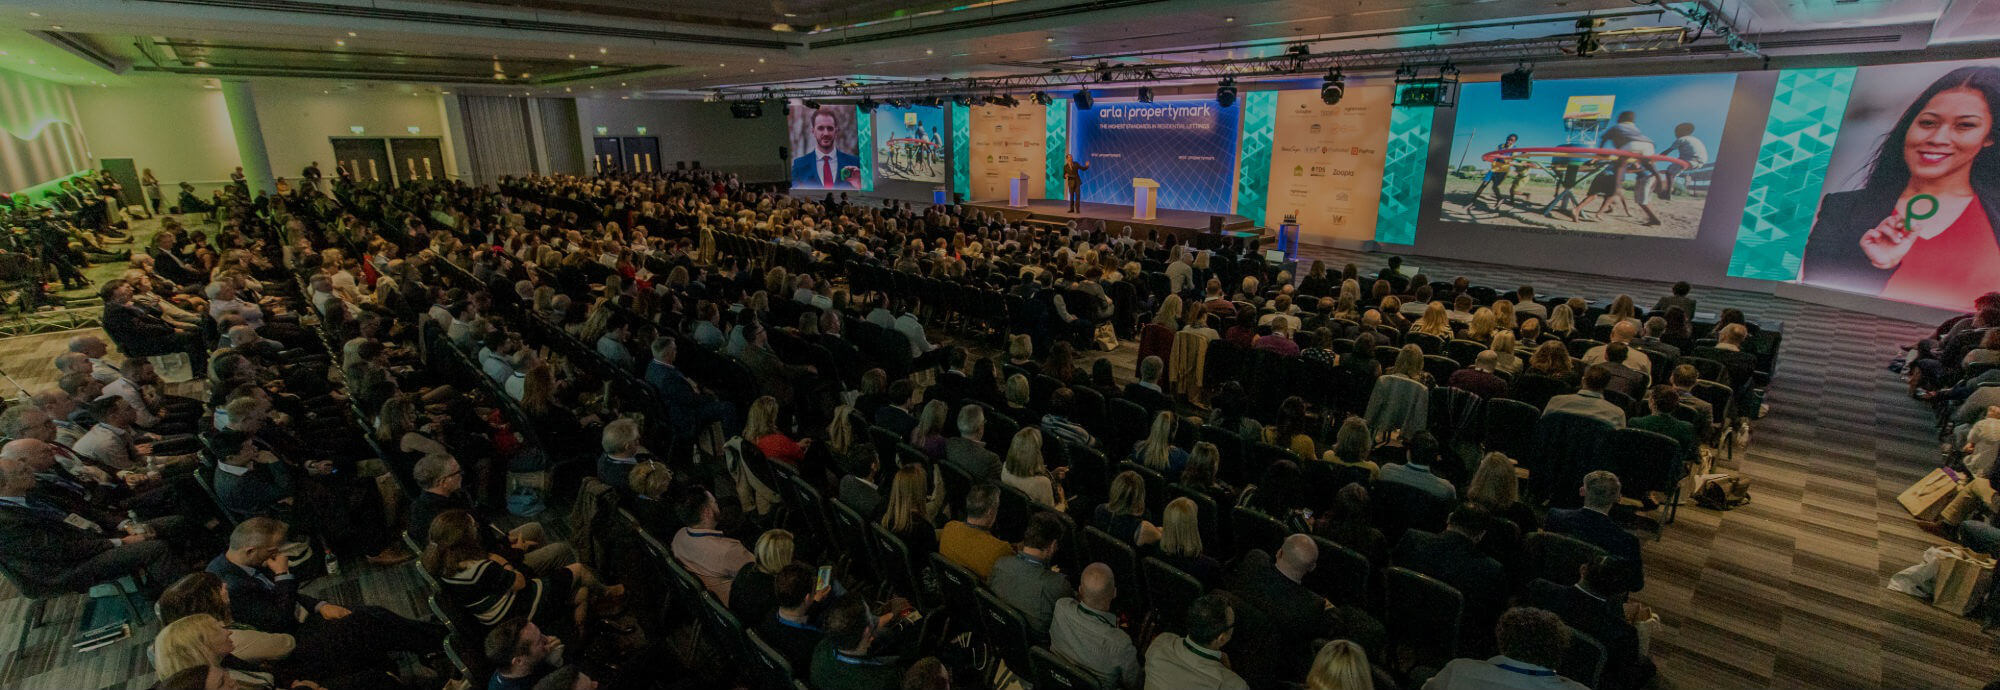 25th ARLA Propertymark Conference